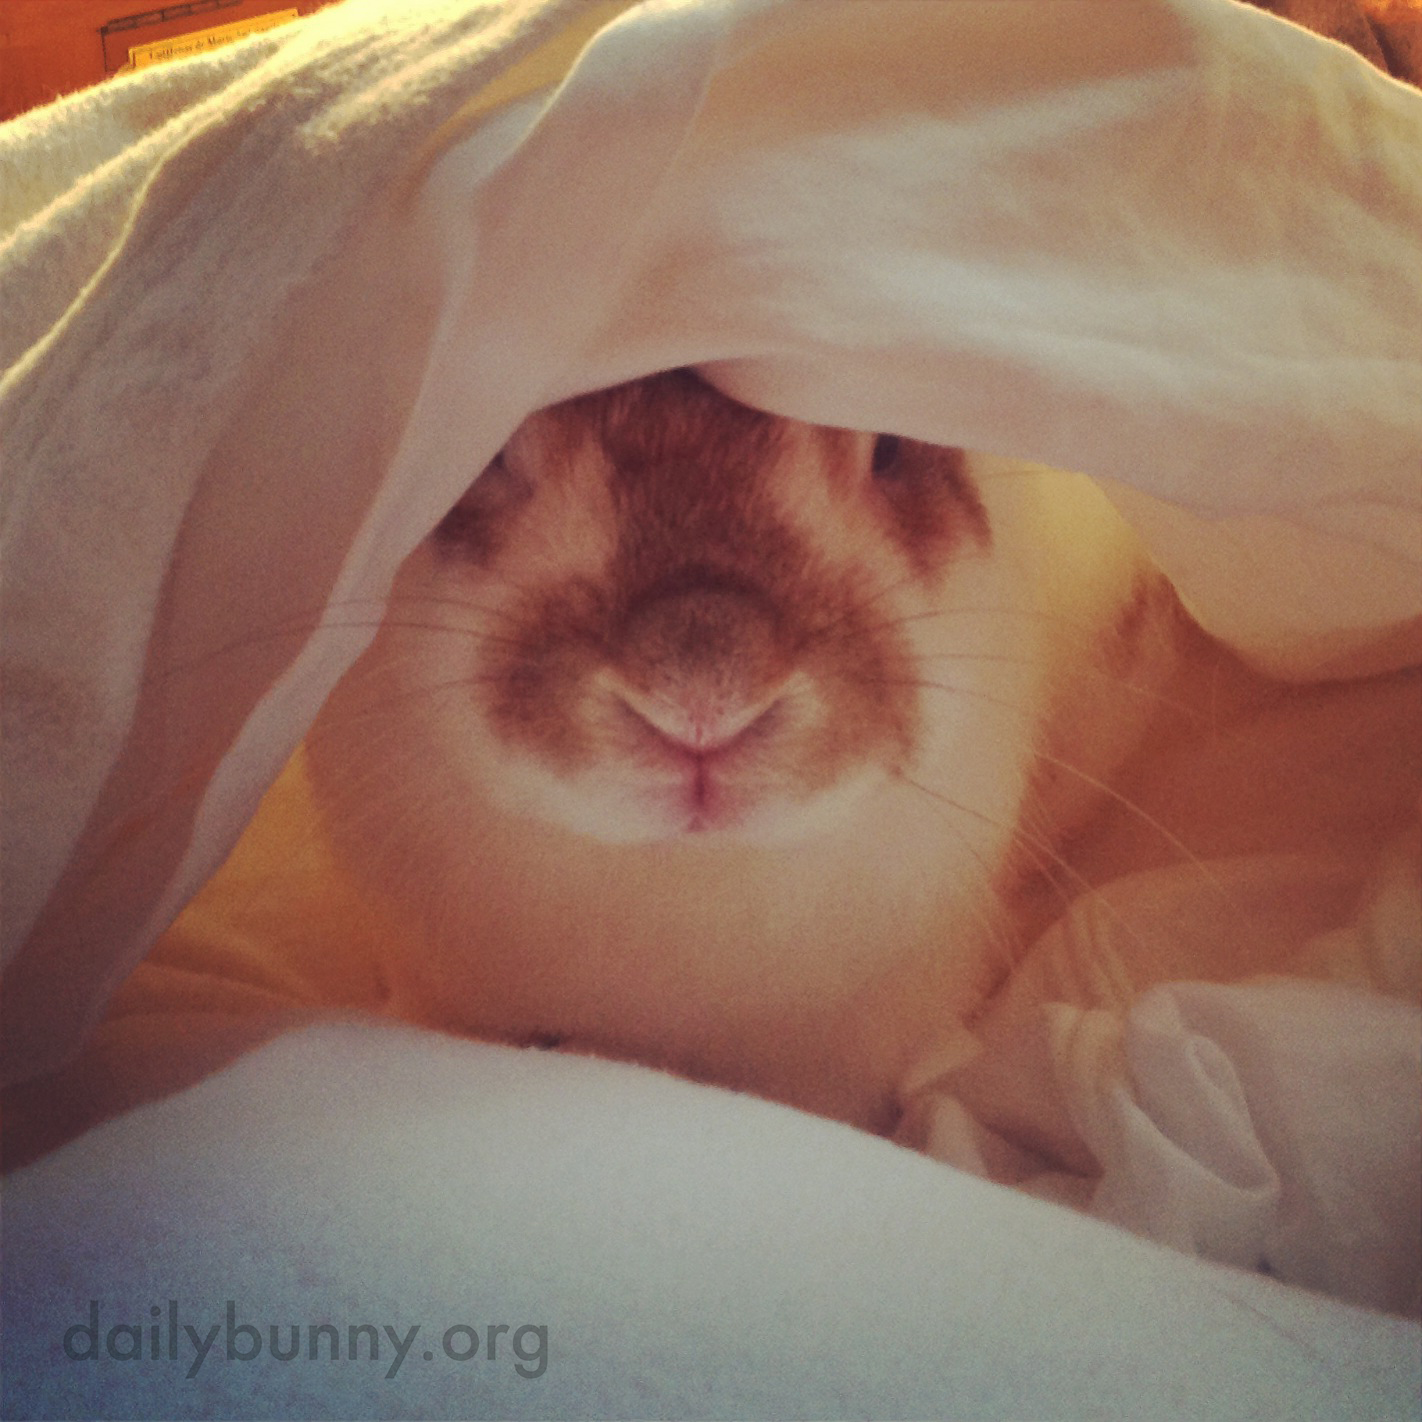 Surprise! Bunny's Hiding Under the Covers!